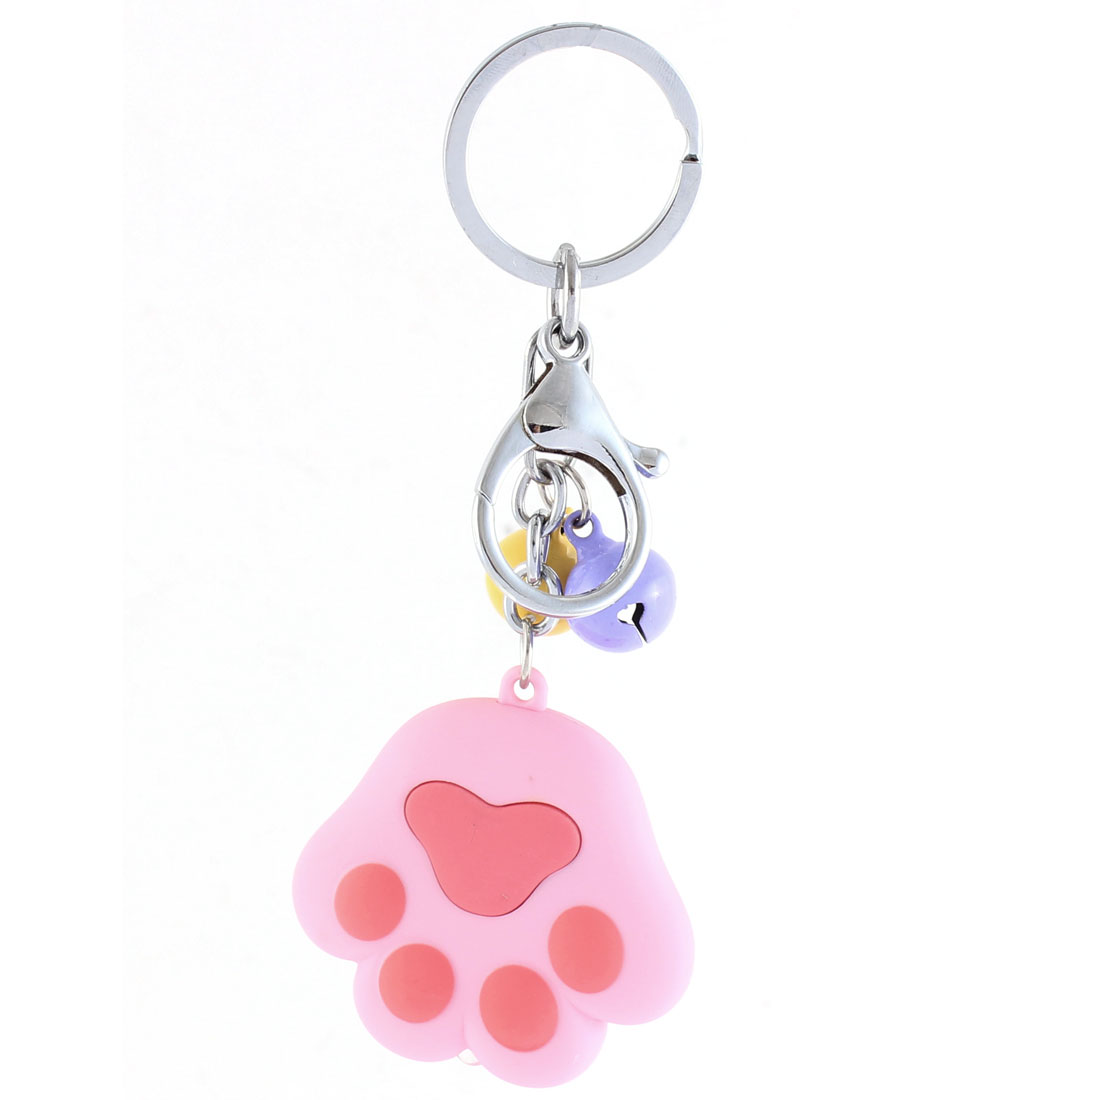 Christmas Gift Footprint Shape Bells LED Flash Light Sound Keychain Pink Red